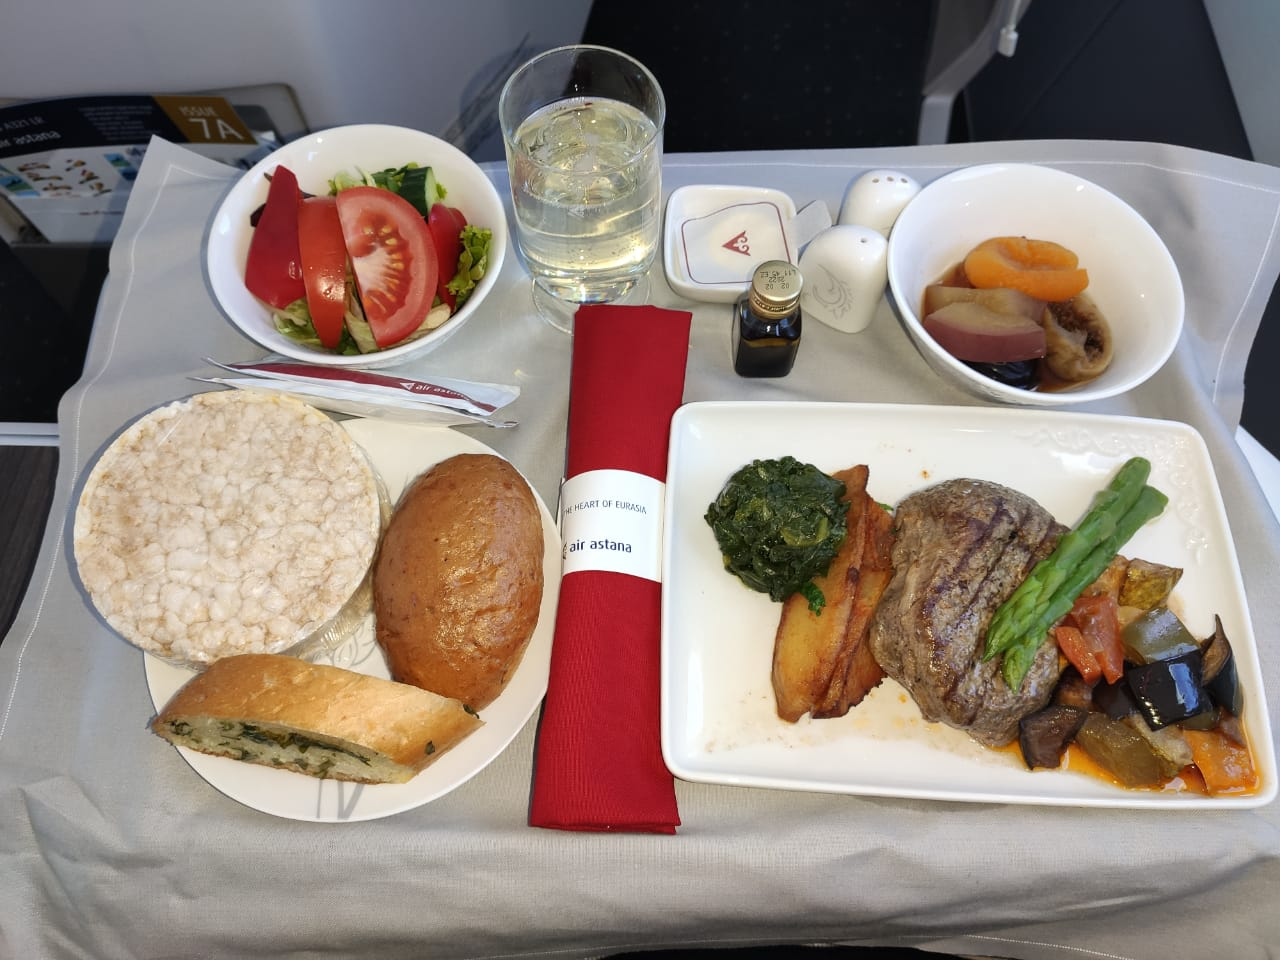 Meals in business class Air Astana on the Almaty-Kyzylorda flight, 2021